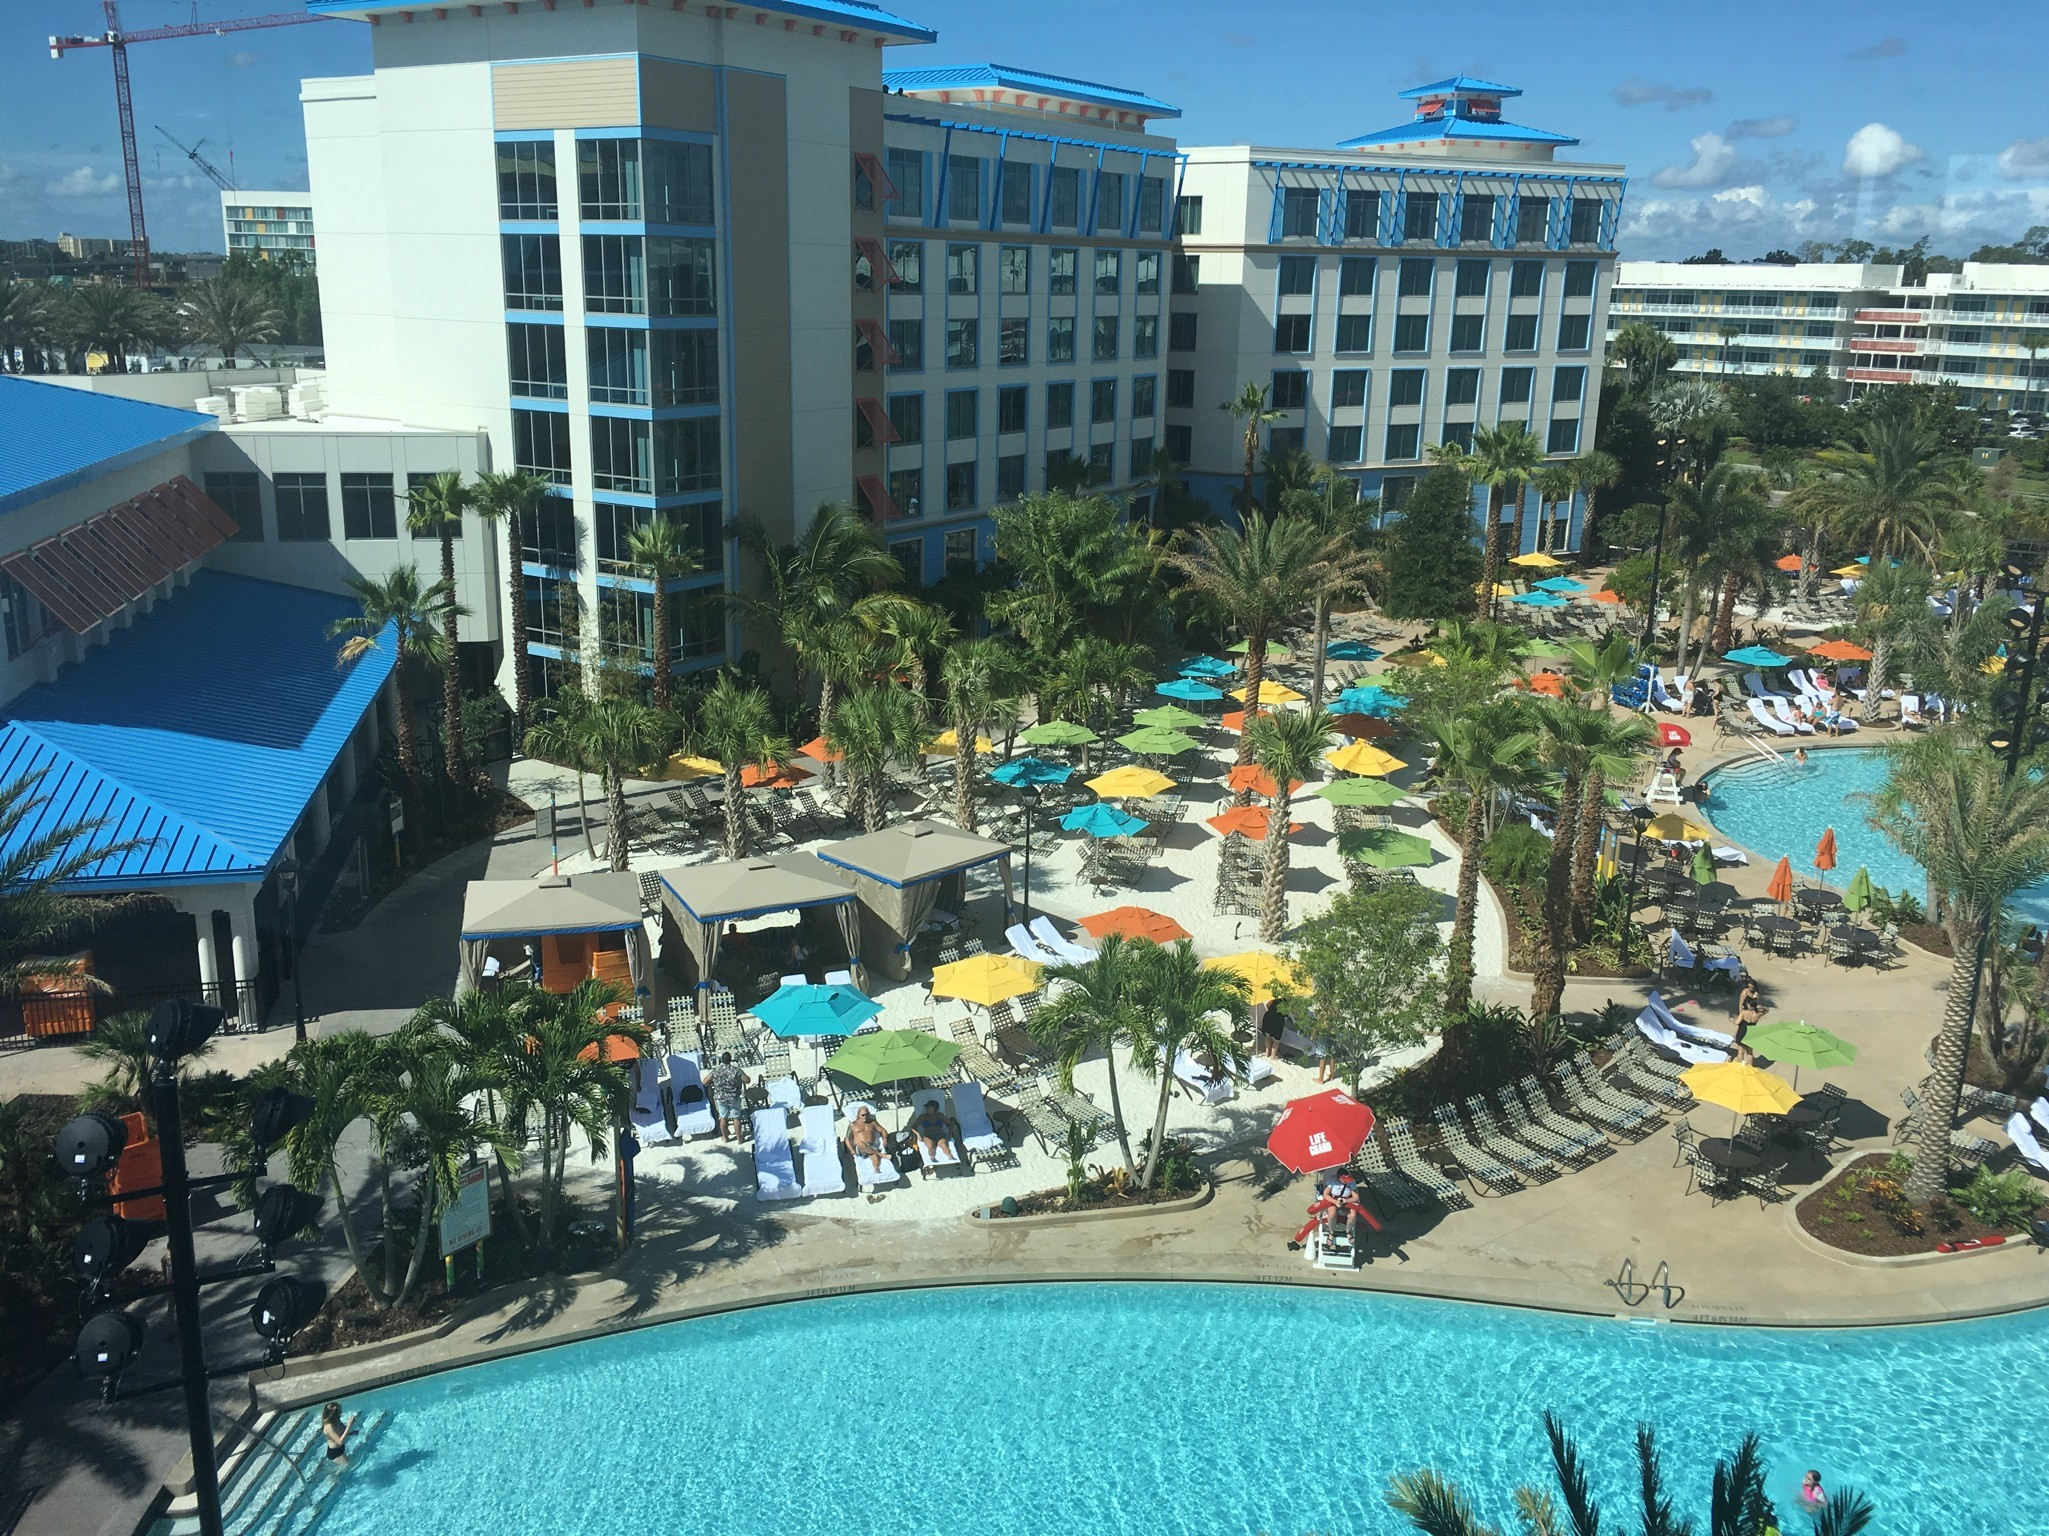 Universal Orlando S New Loews Sapphire Falls Resort Is Now Open Mostly Blogs